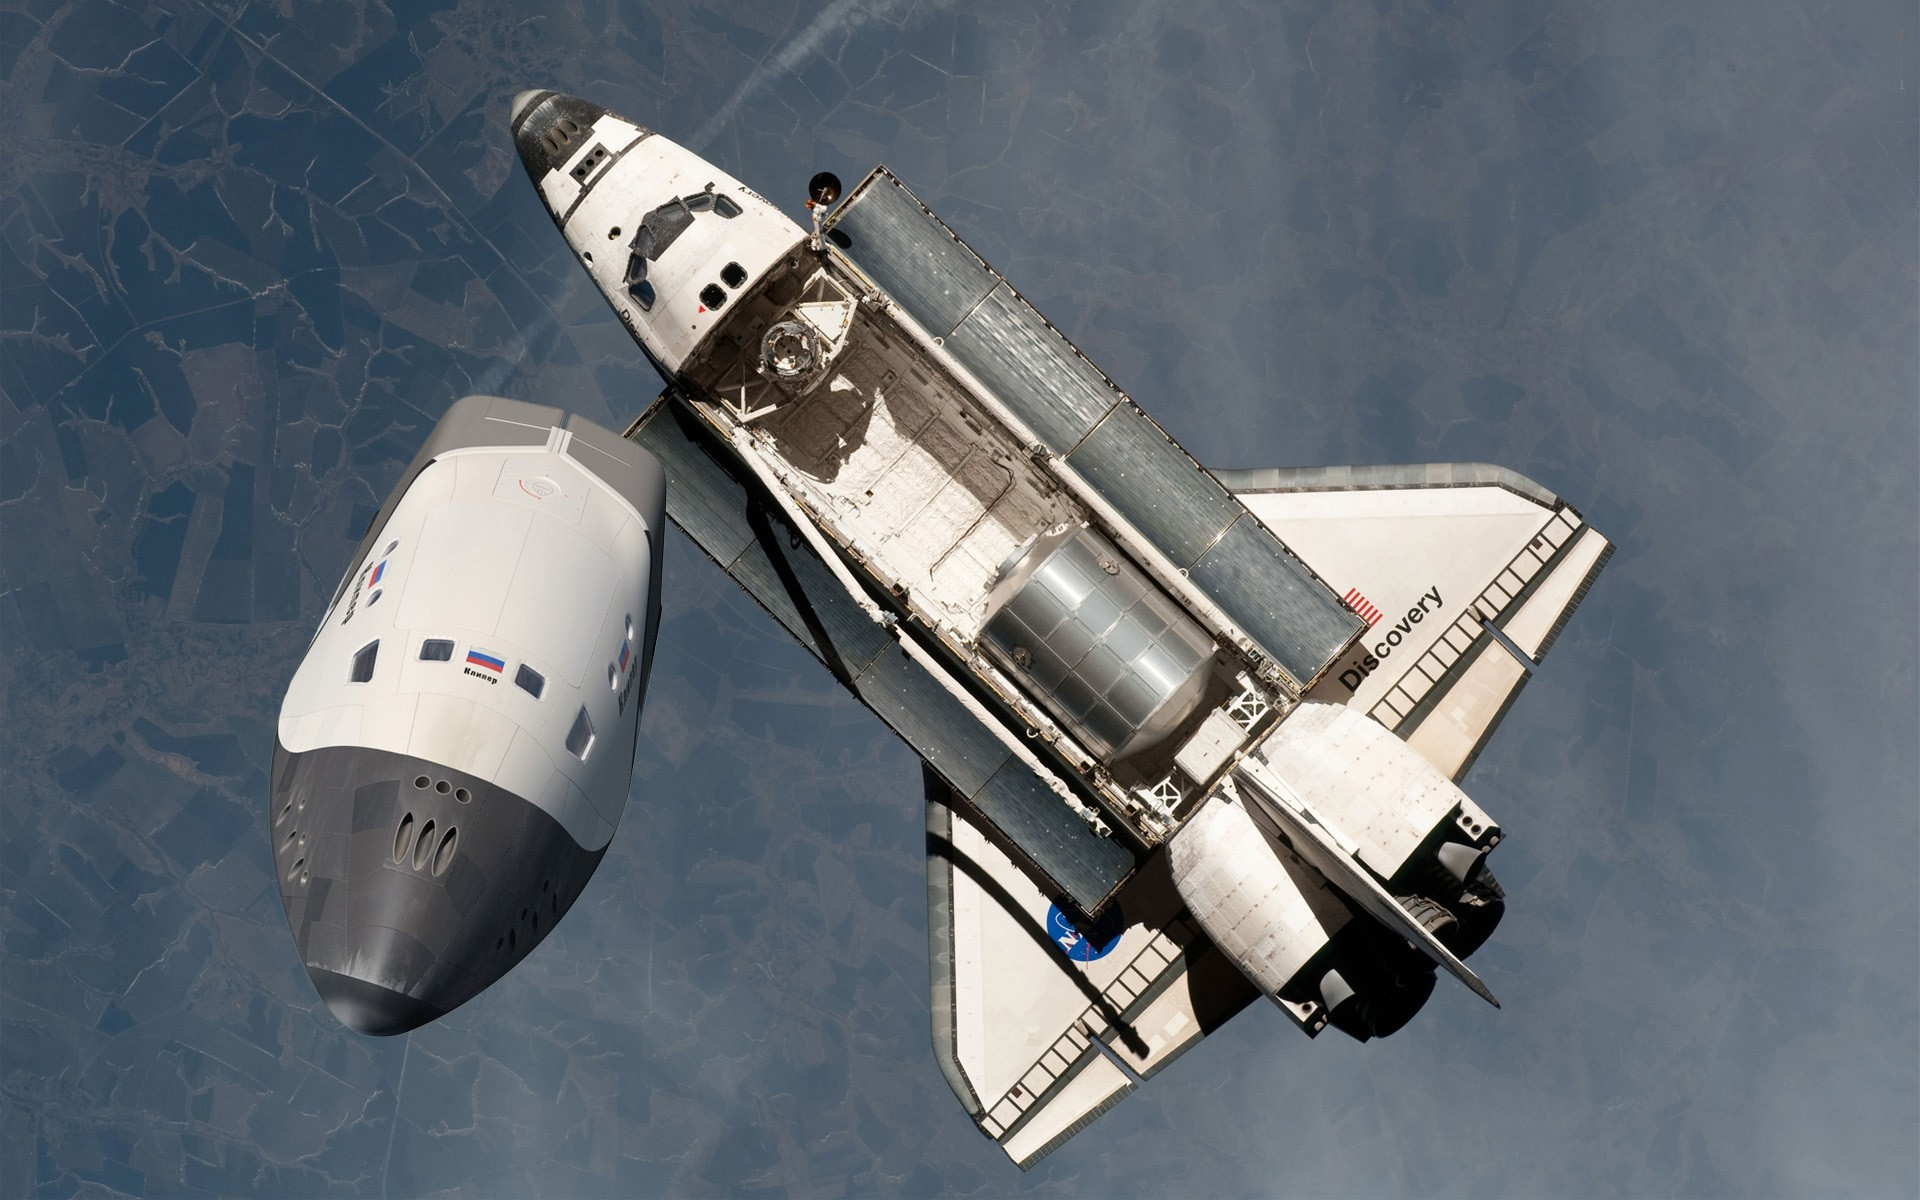 General 1920x1200 Space Shuttle Discovery NASA photo manipulation fakes